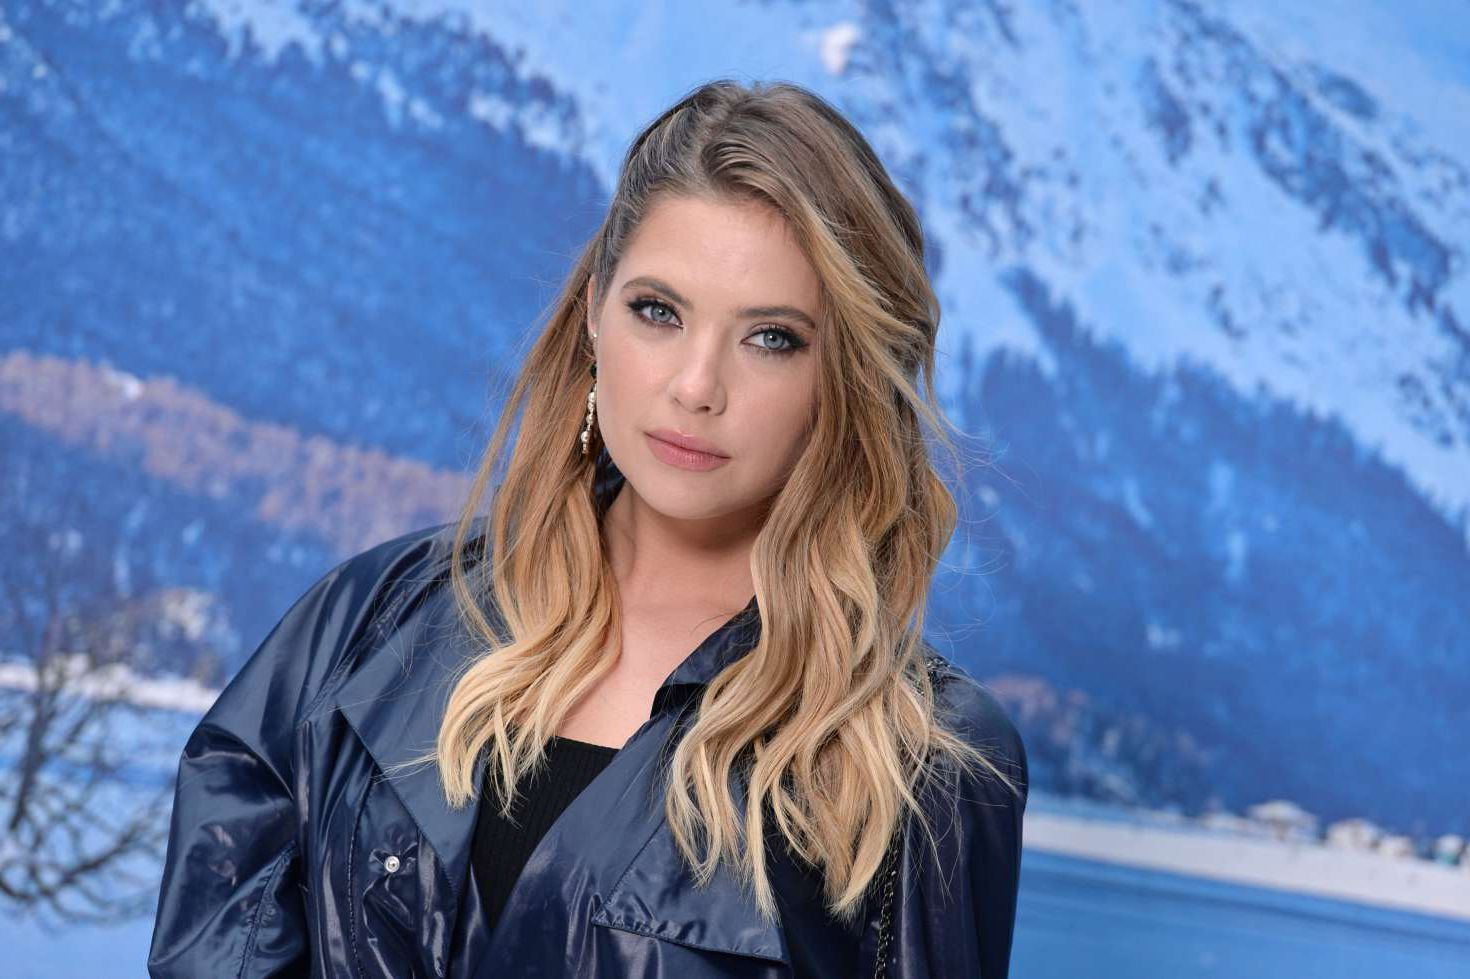 Ashley Benson, actress at the Chanel Fashion Show, 2019